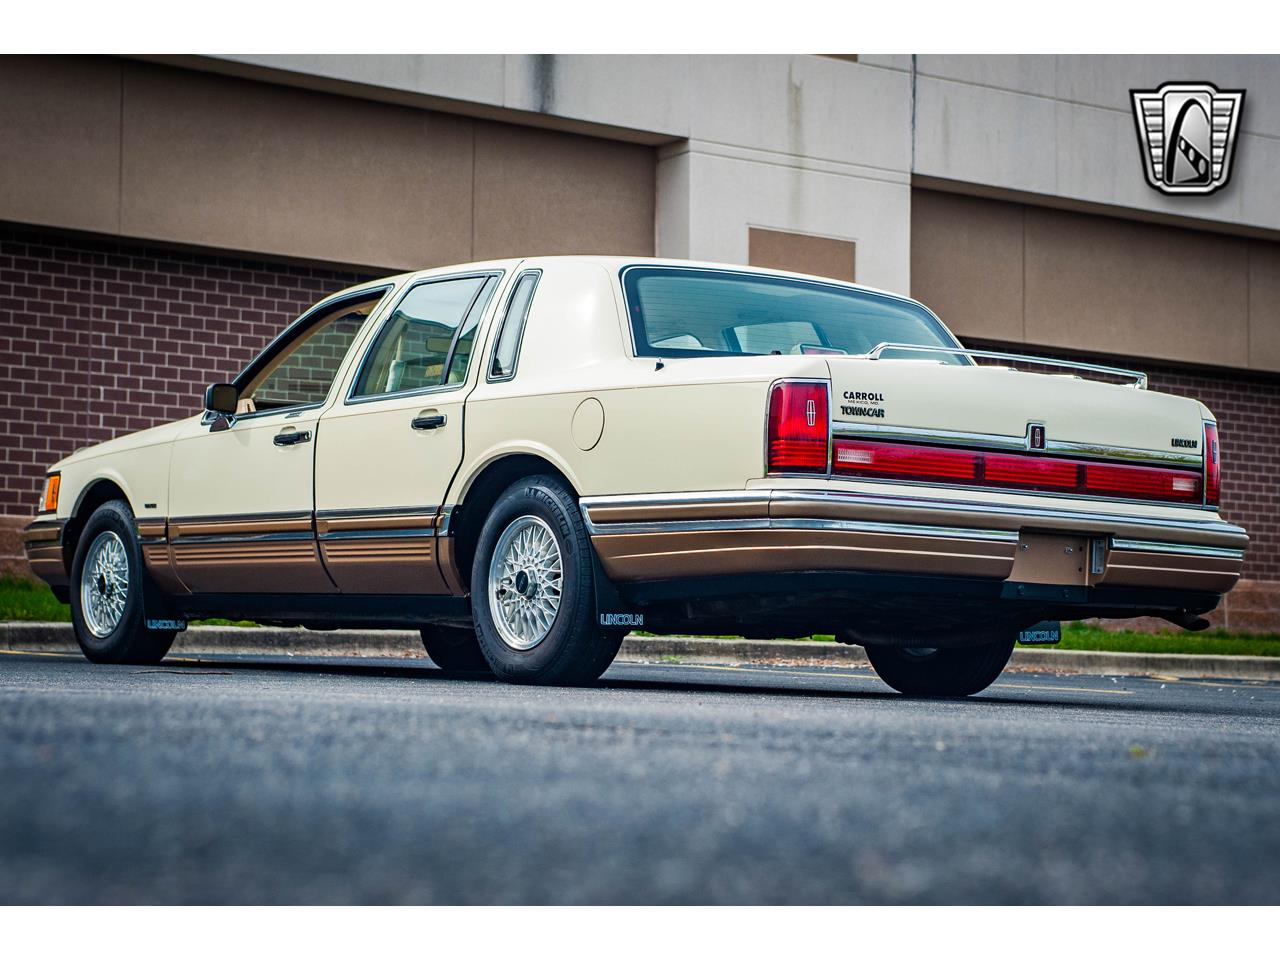 Large Picture of 1990 Lincoln Town Car - $16,500.00 Offered by Gateway Classic Cars - St. Louis - QB8G